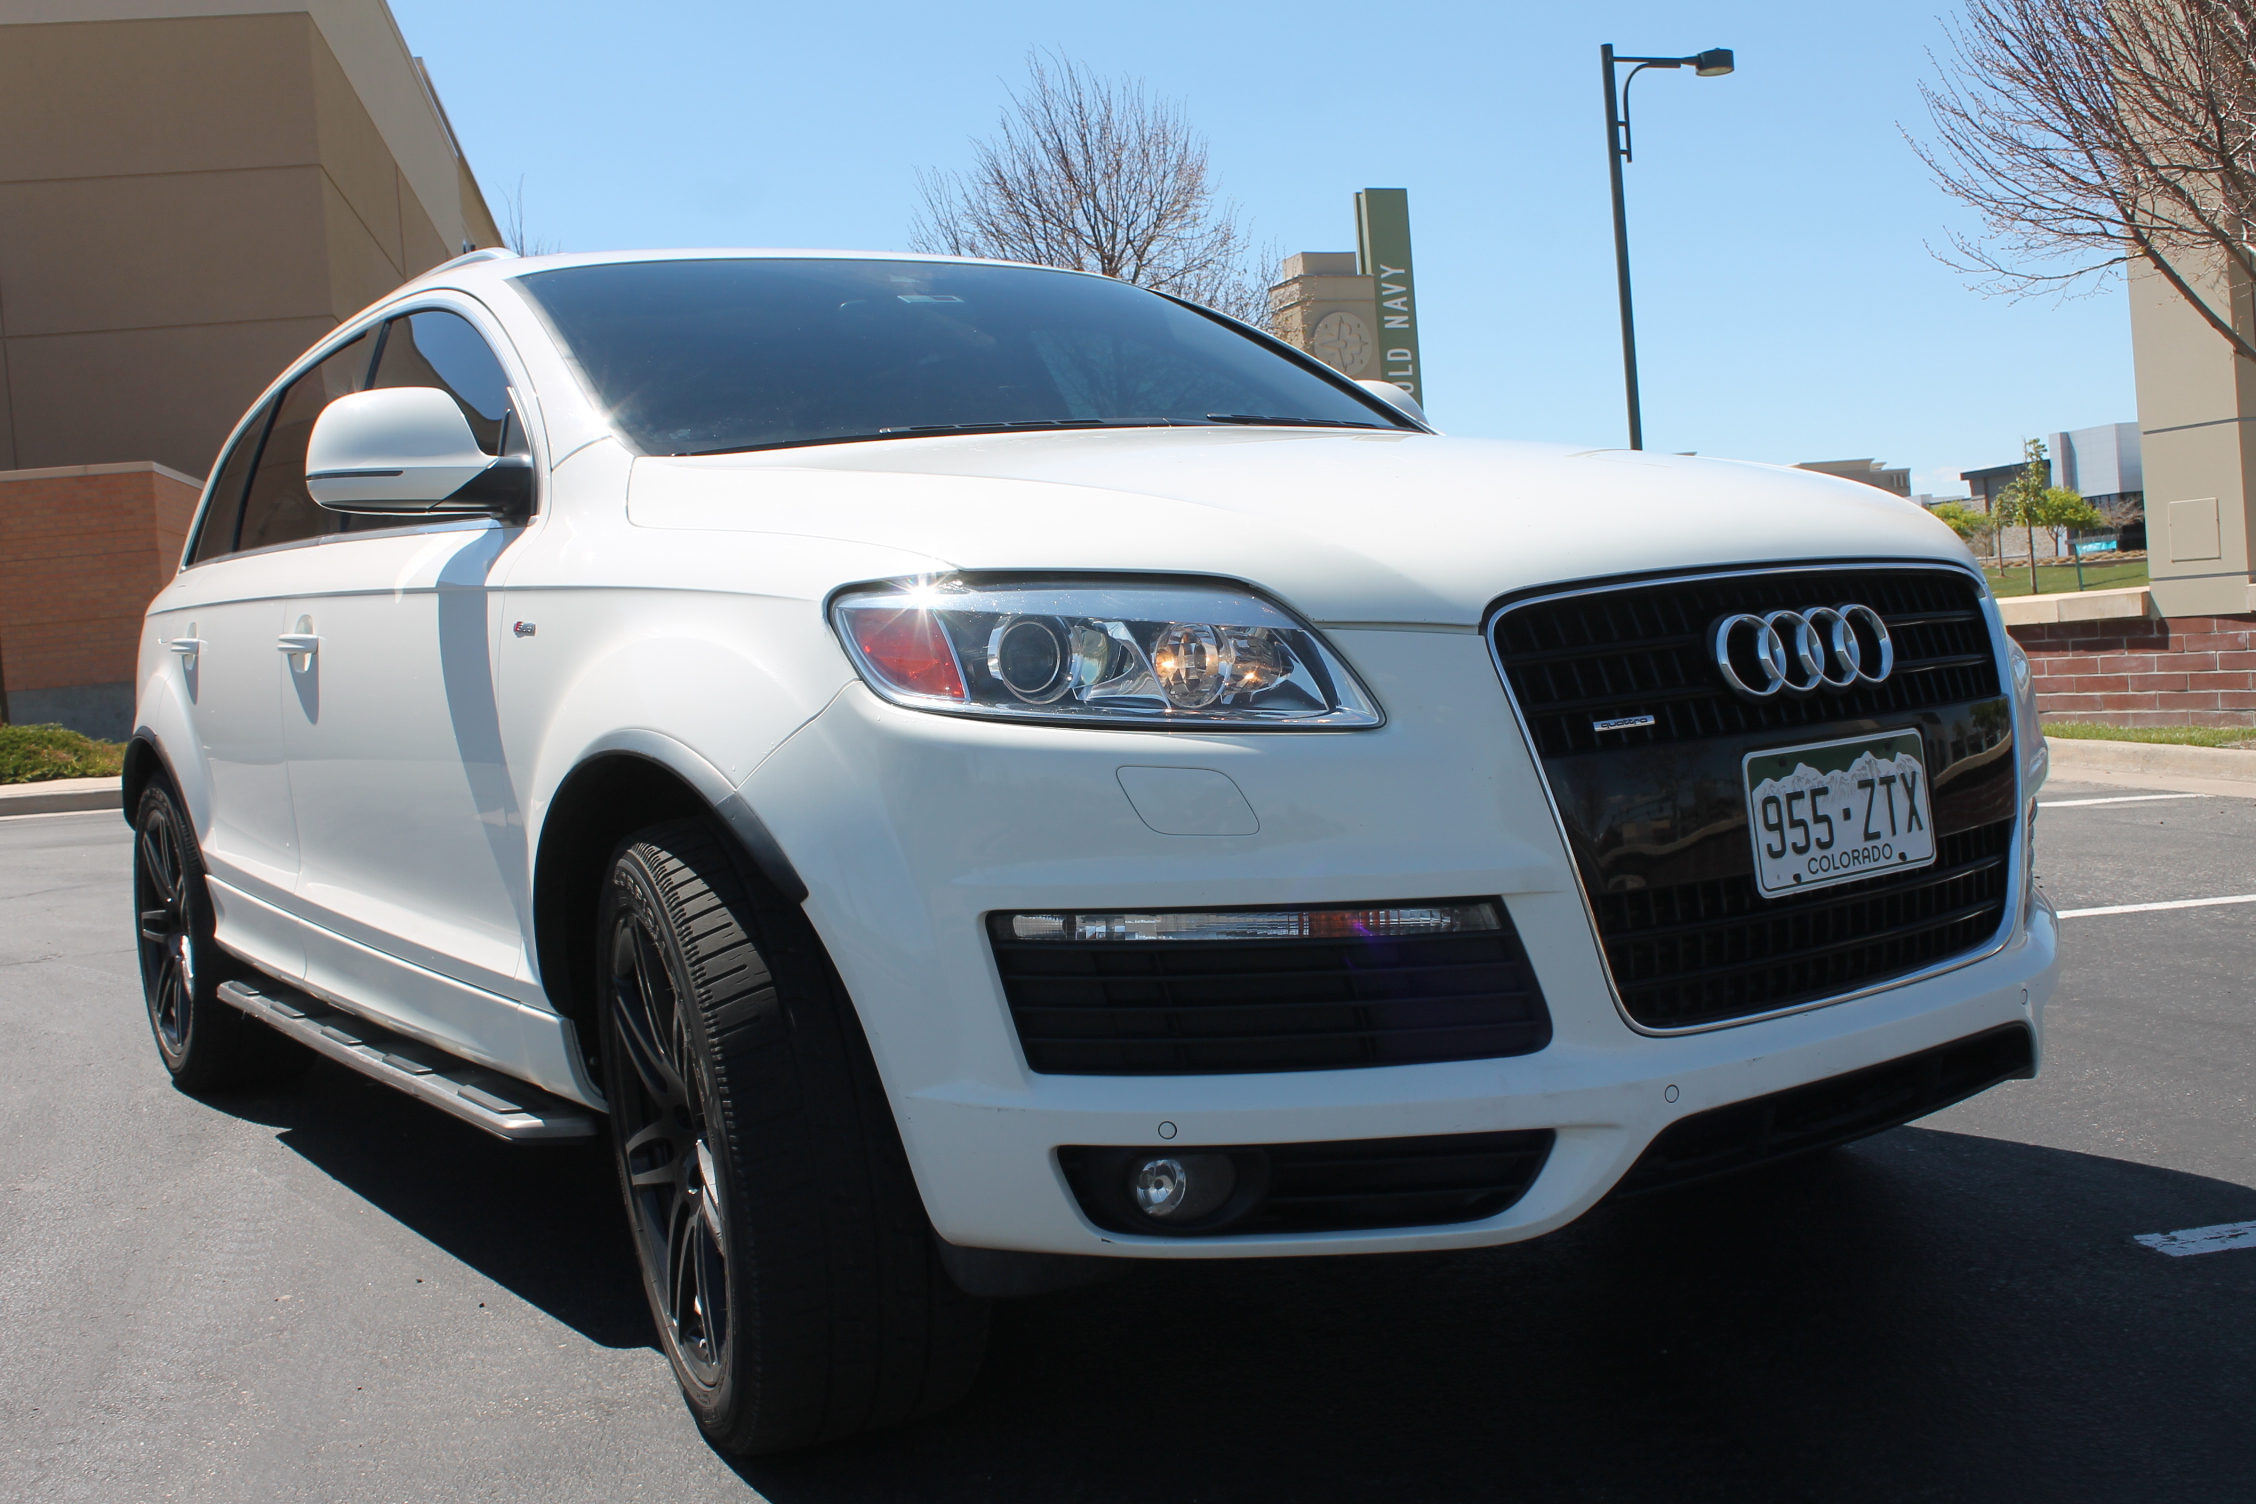 2008 audi q7 quattro suv s line xenon nav bose top of the line for sale in denver sold. Black Bedroom Furniture Sets. Home Design Ideas